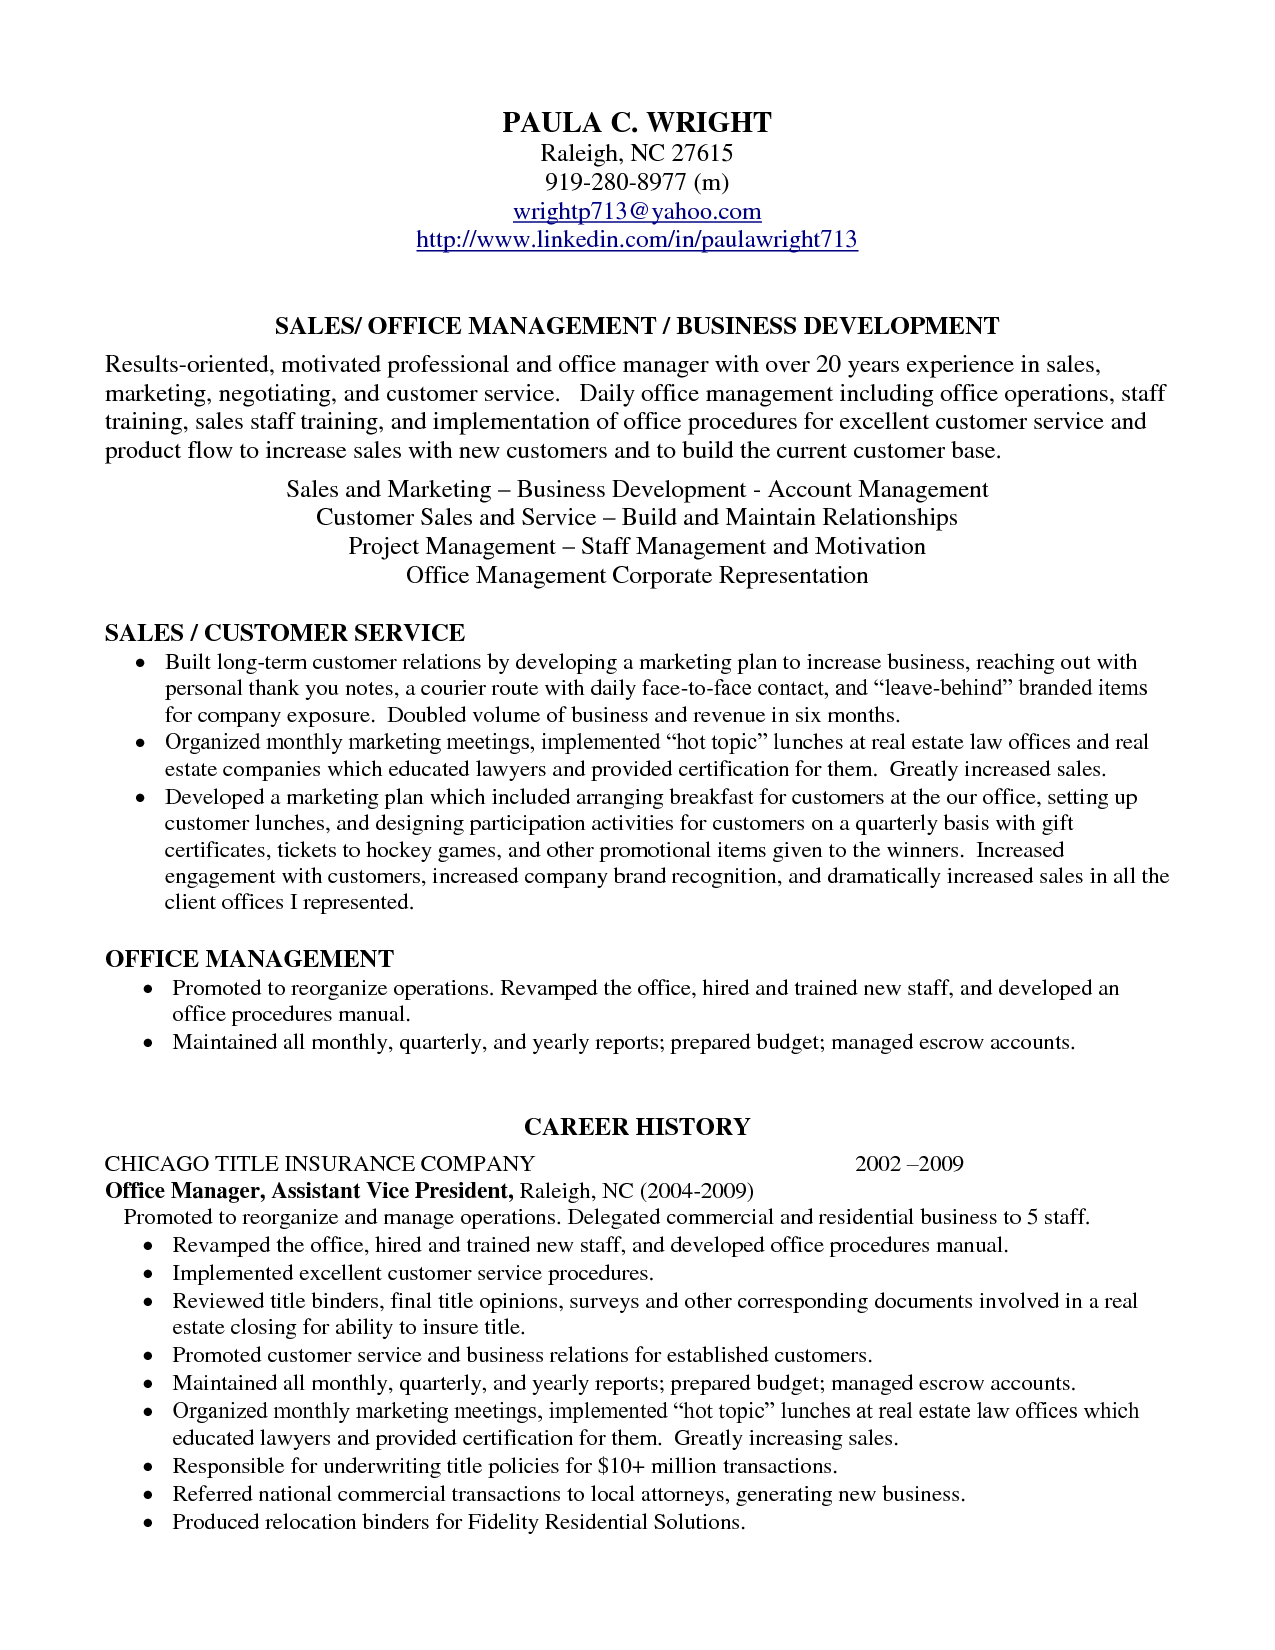 Sample Resume Summary Professional Profile Resume Examplesresume Professional Profile